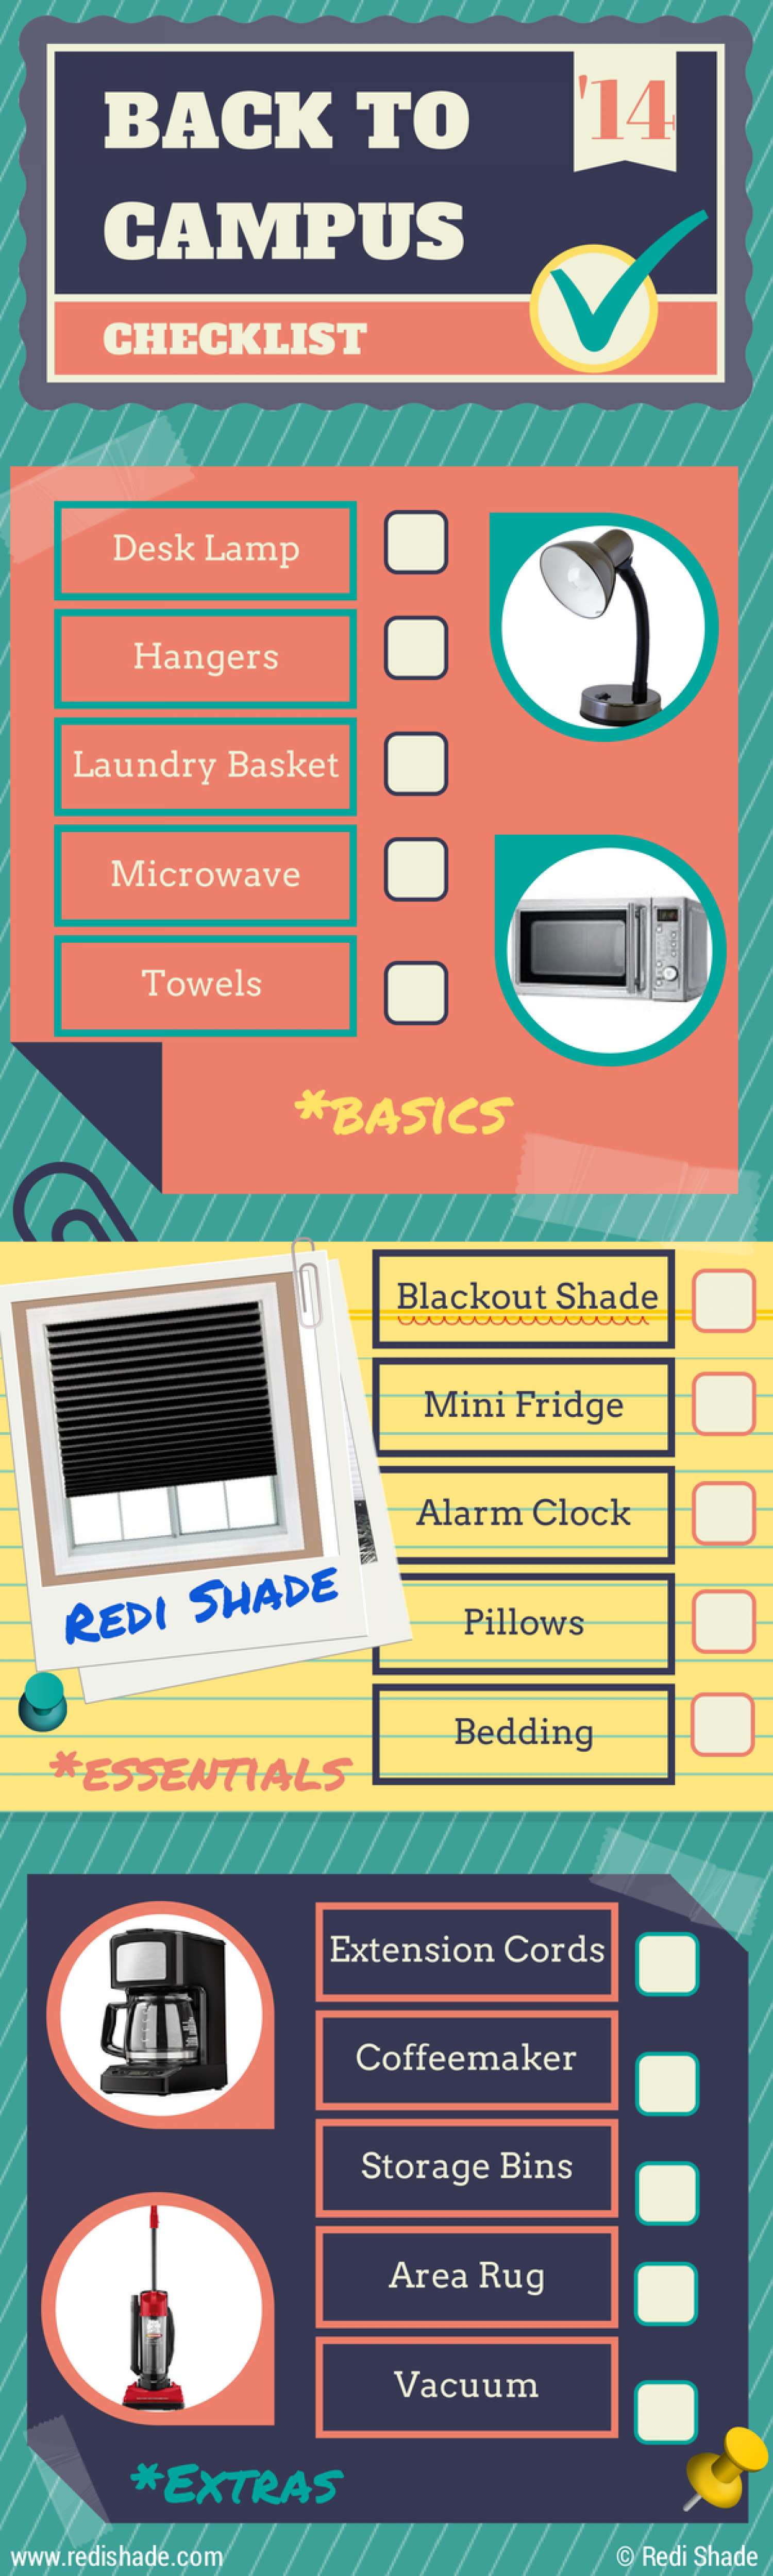 Back to Campus Checklist Infographic Infographic